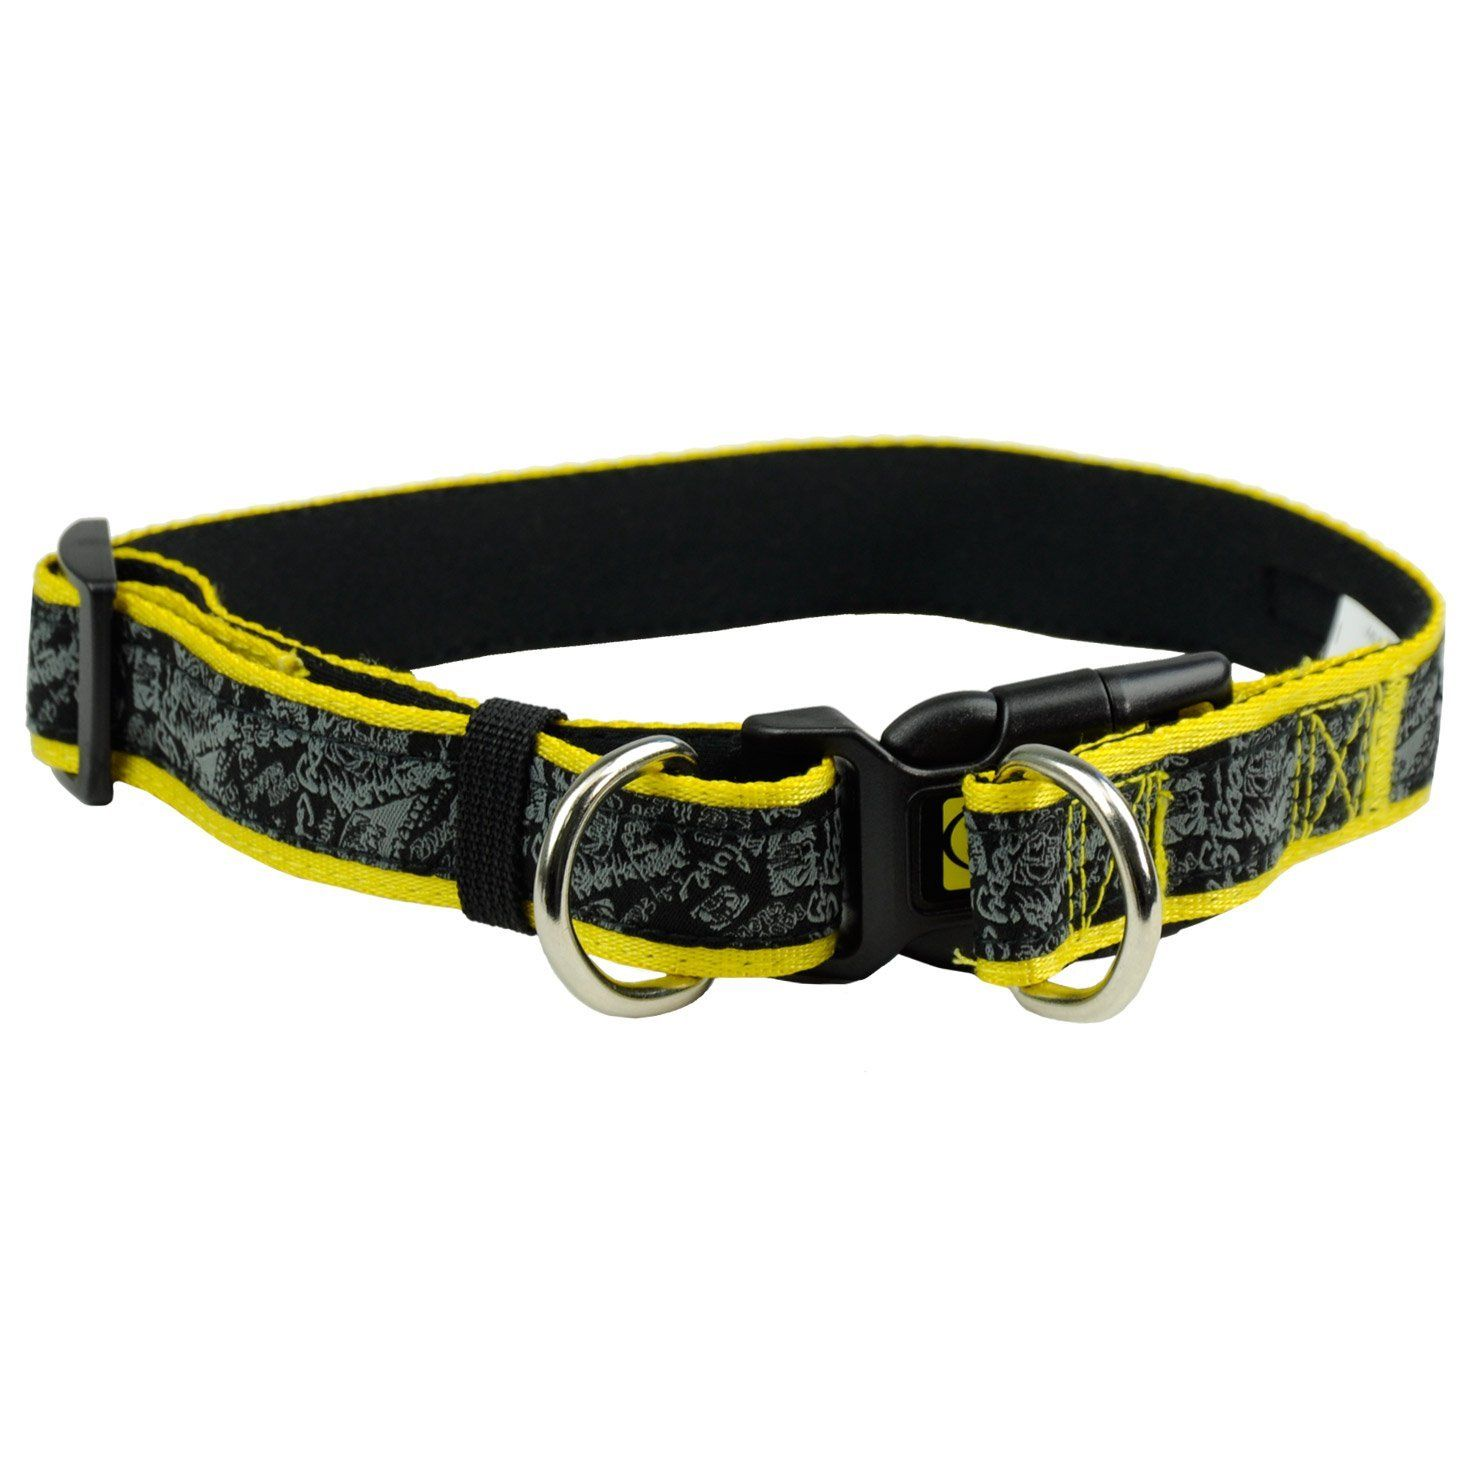 Body Glove Pet Double D Ring Neoprene Training Collar Large